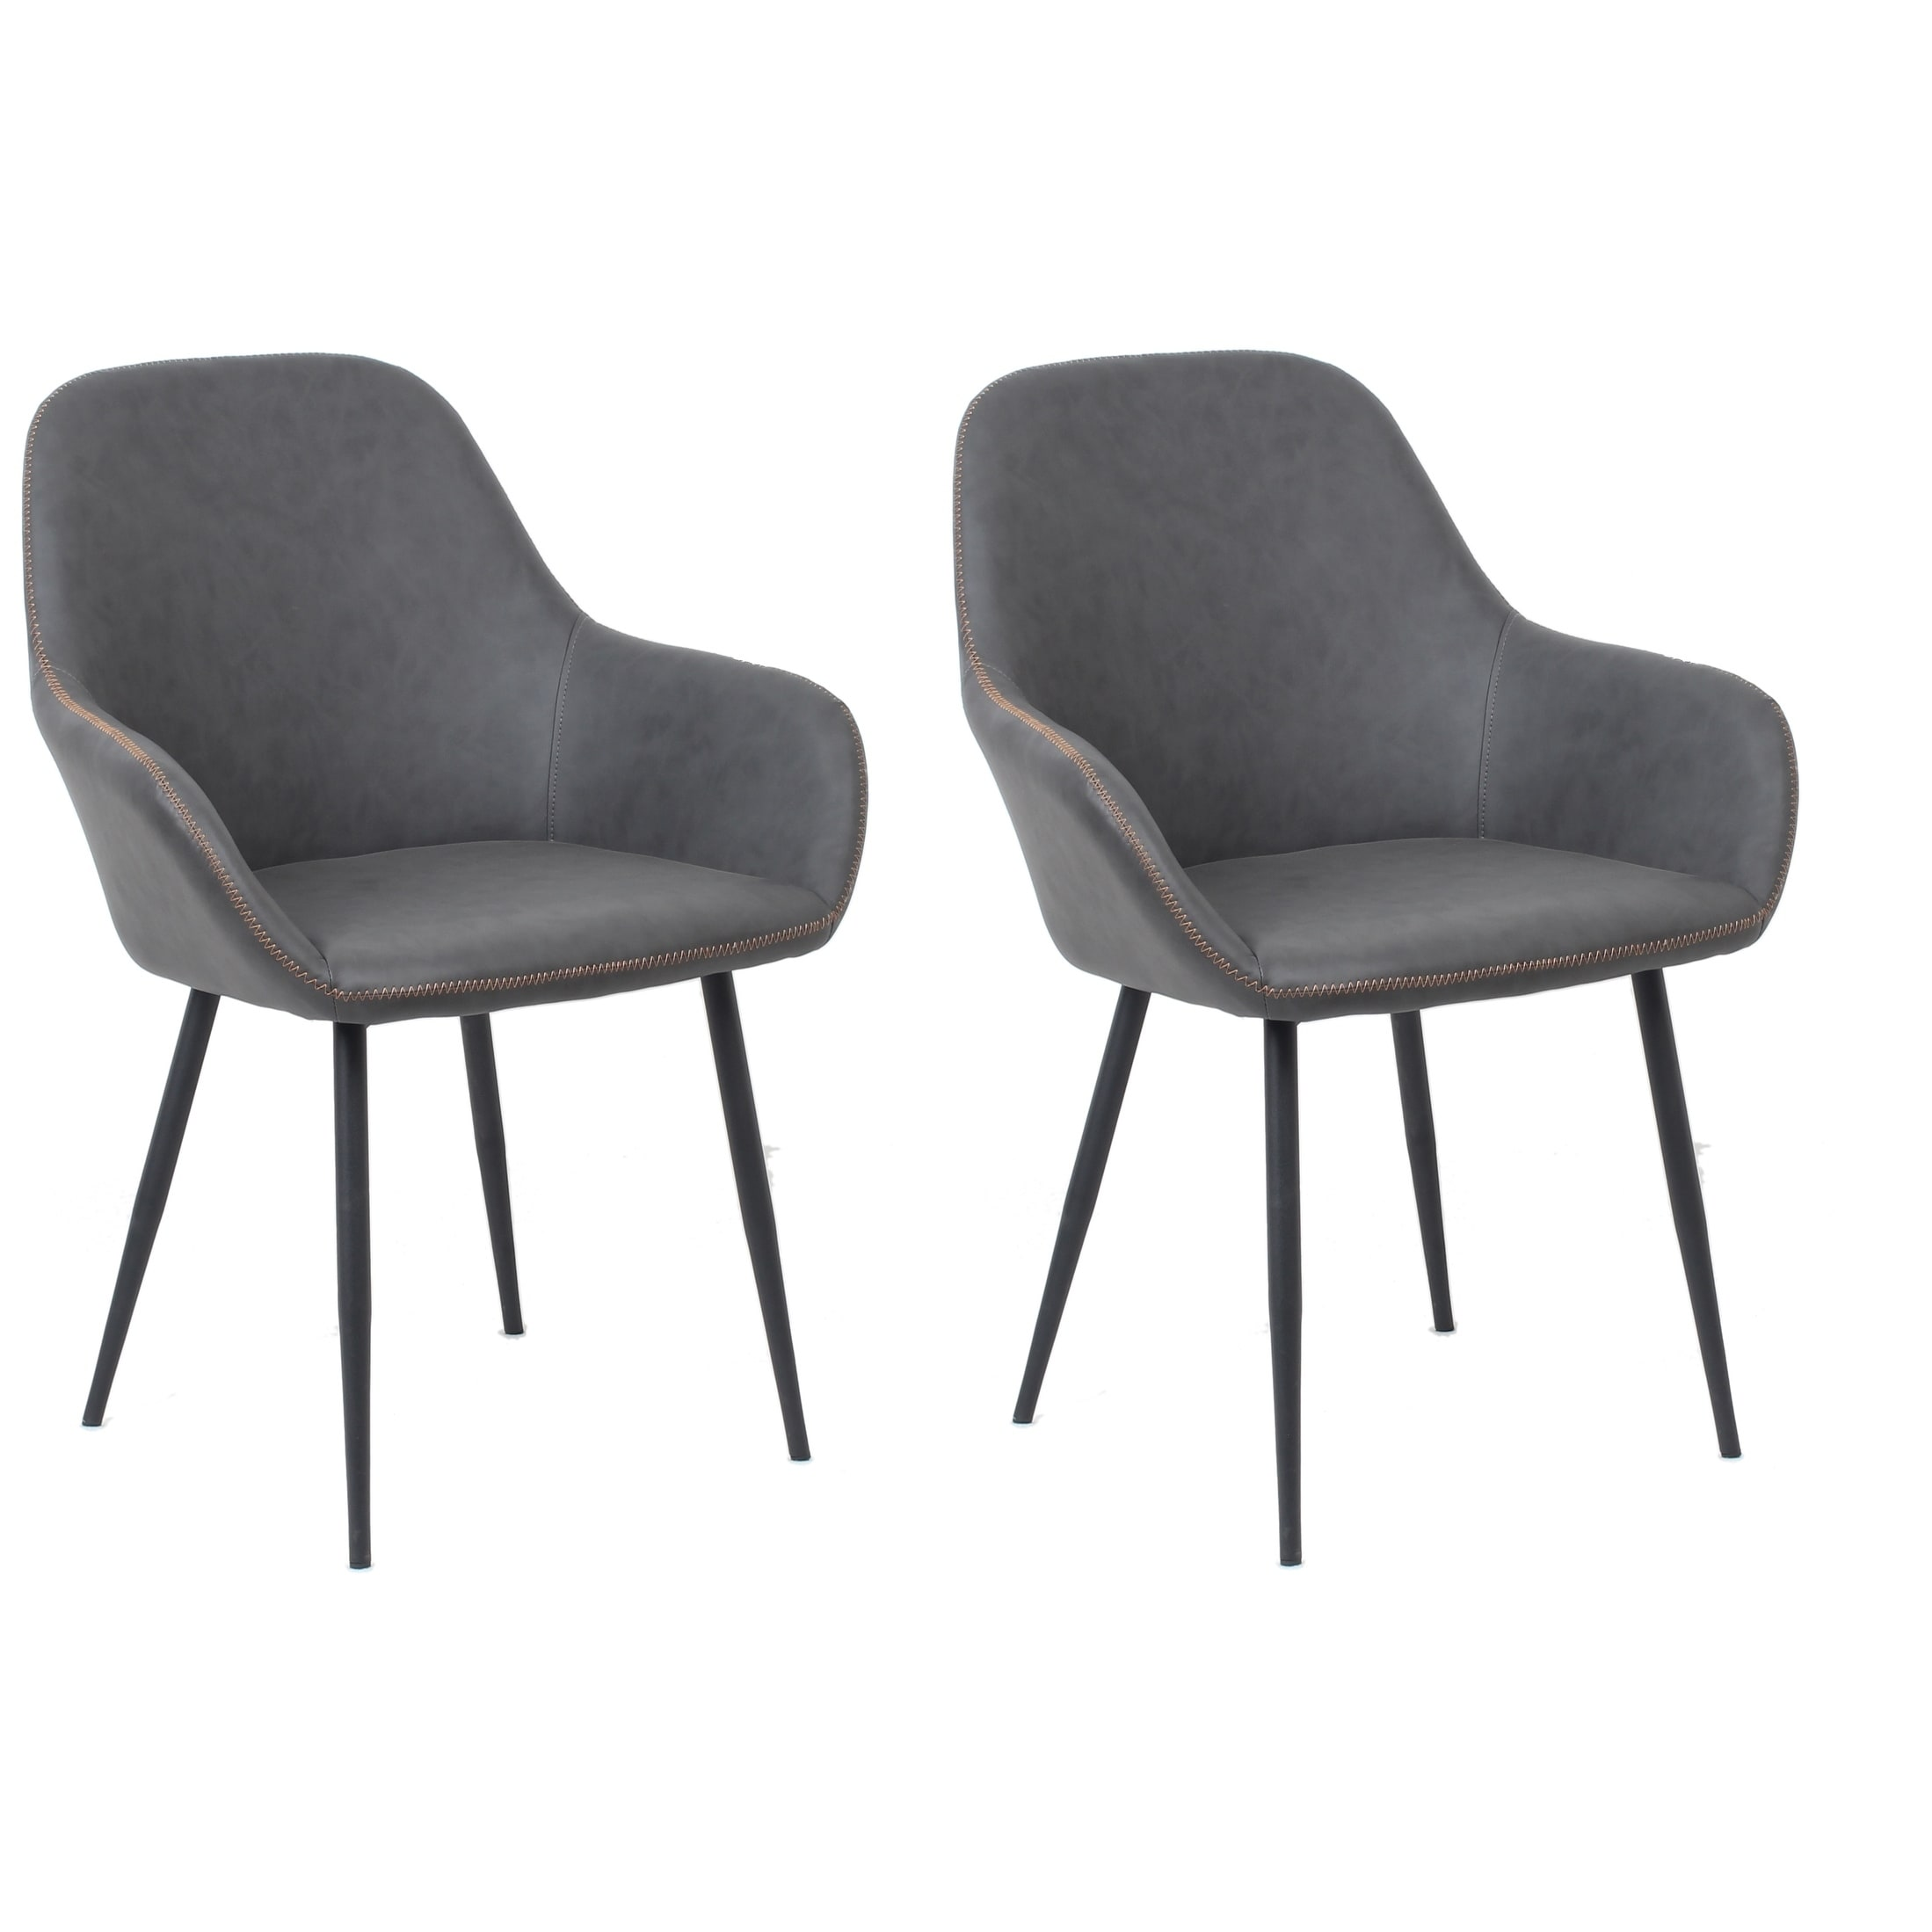 Outstanding Bucket Style Upholstered Dining Chairs Set Of 2 Pack Dark Grey Machost Co Dining Chair Design Ideas Machostcouk